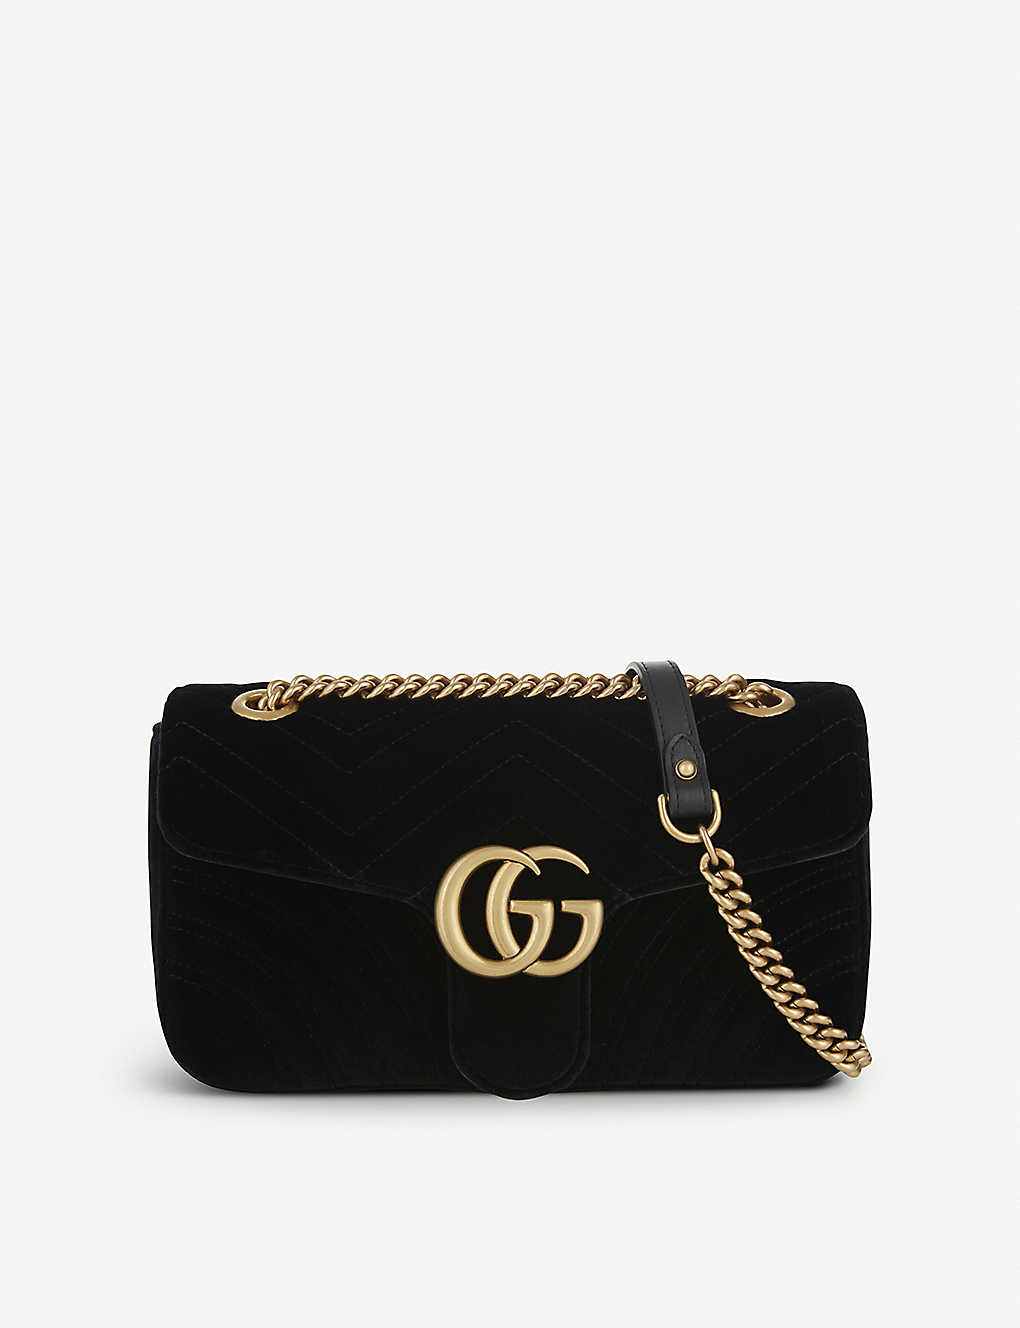 69efc02ef46 GUCCI - Marmont small velvet shoulder bag